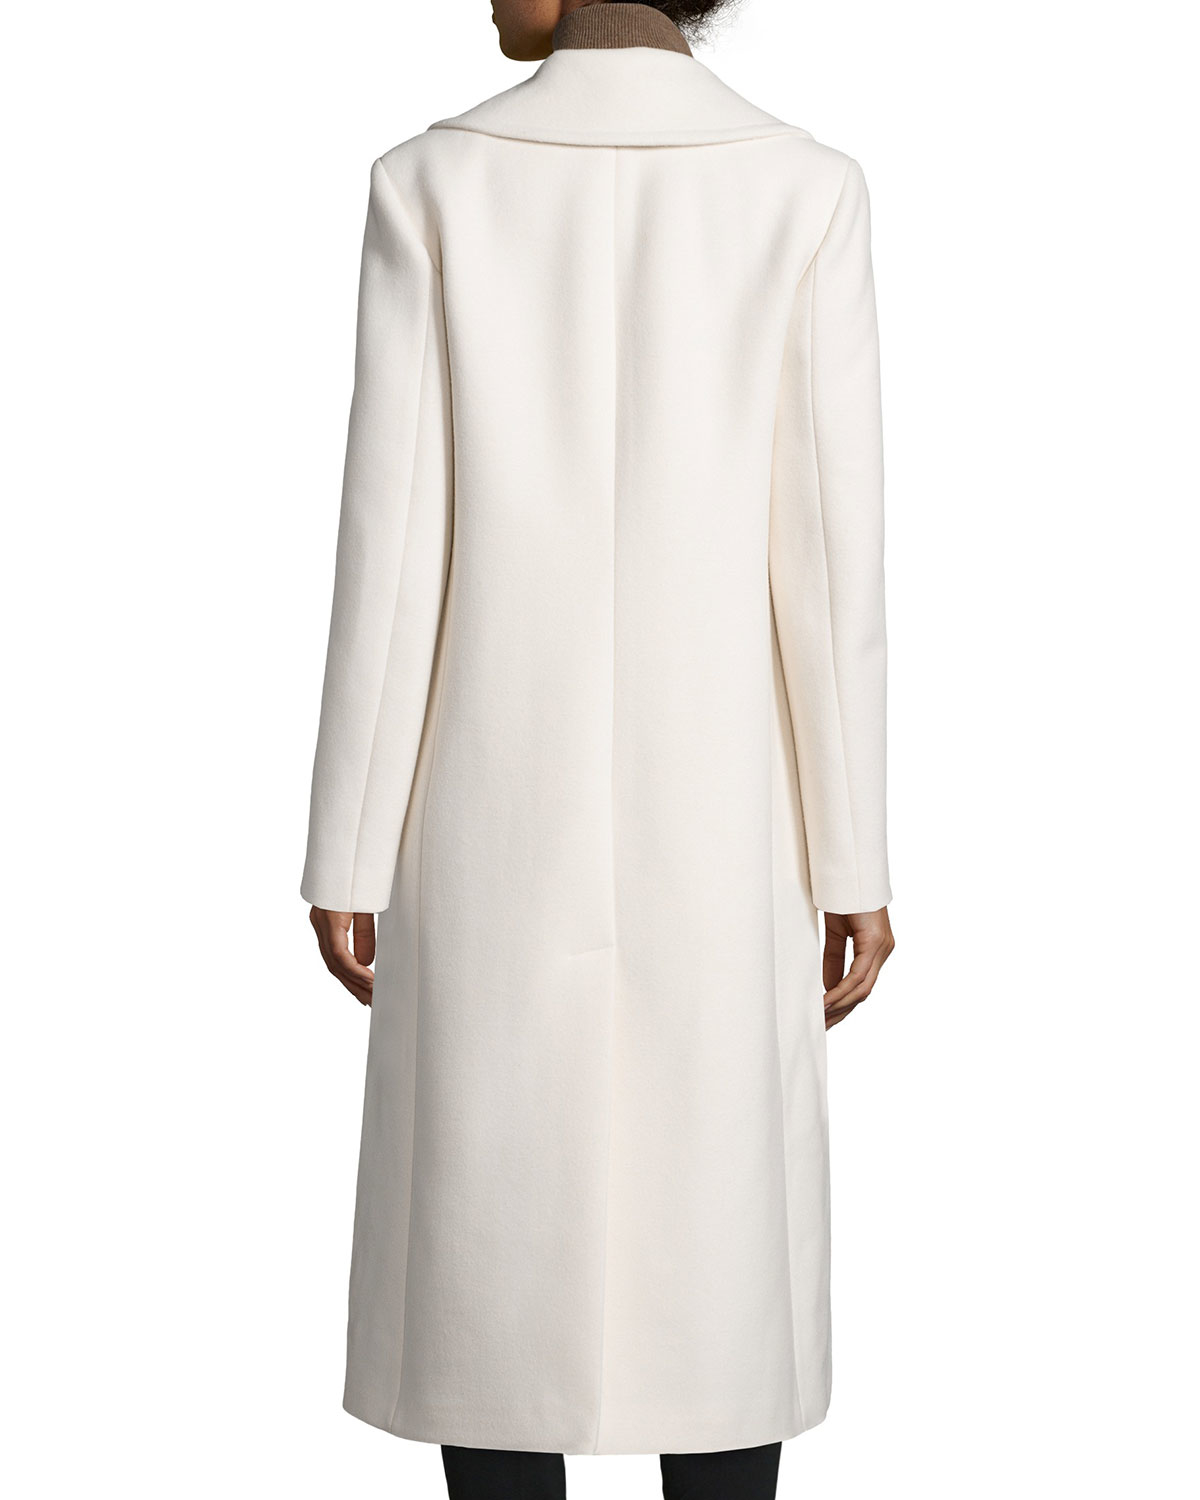 Michael kors Double-breasted Long Coat in White